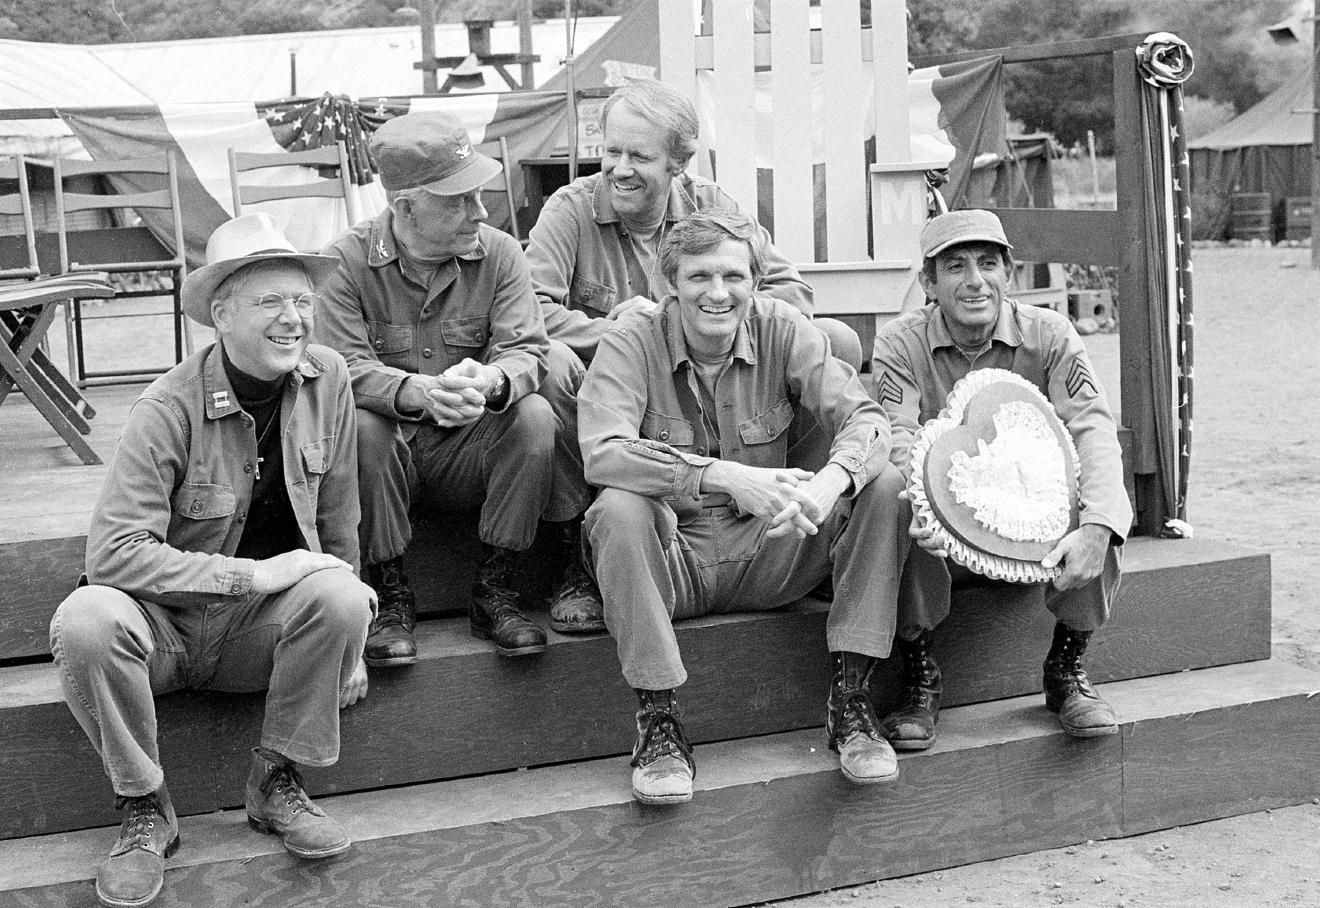 "FILE- In this Sept. 15, 1982, file photo, cast members of the television series ""M*A*S*H"" from left, William Christopher, Harry Morgan, Mike Farrell, Alan Alda, and Jamie Farr, take a break on the set during taping in Los Angeles. Christopher died Saturday, Dec. 31, 2016. He was 84. (AP Photo/Wally Fong, File)"